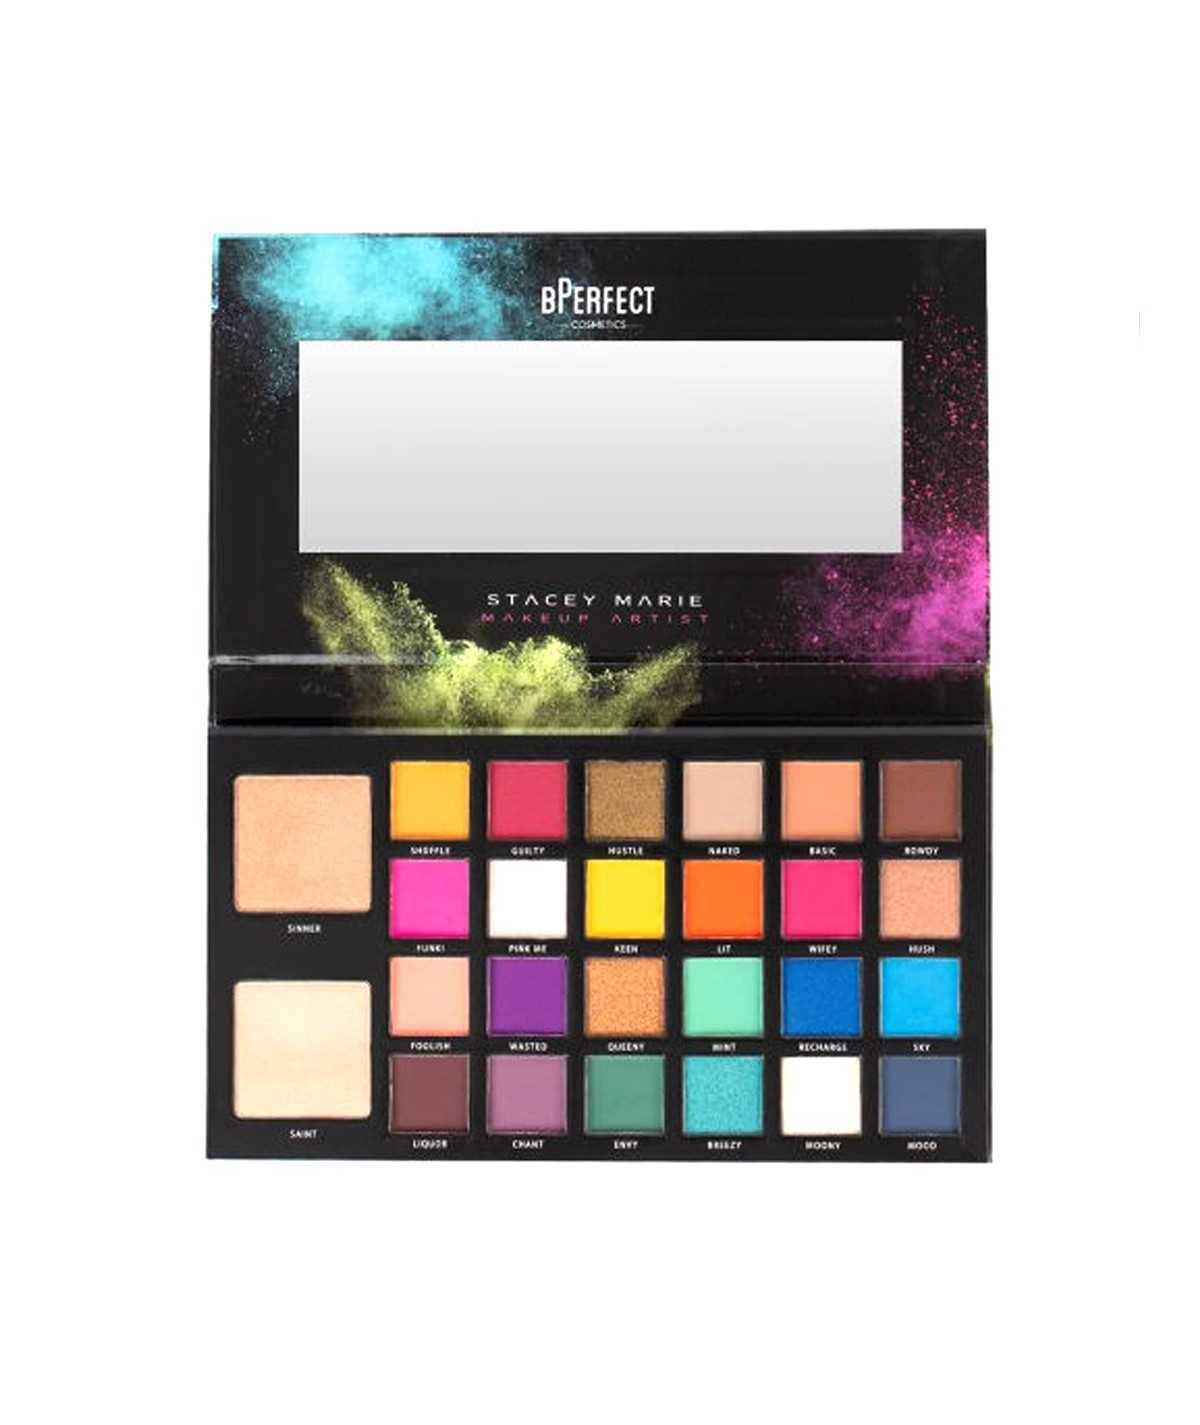 Bperfect cosmetics Carnival Palette